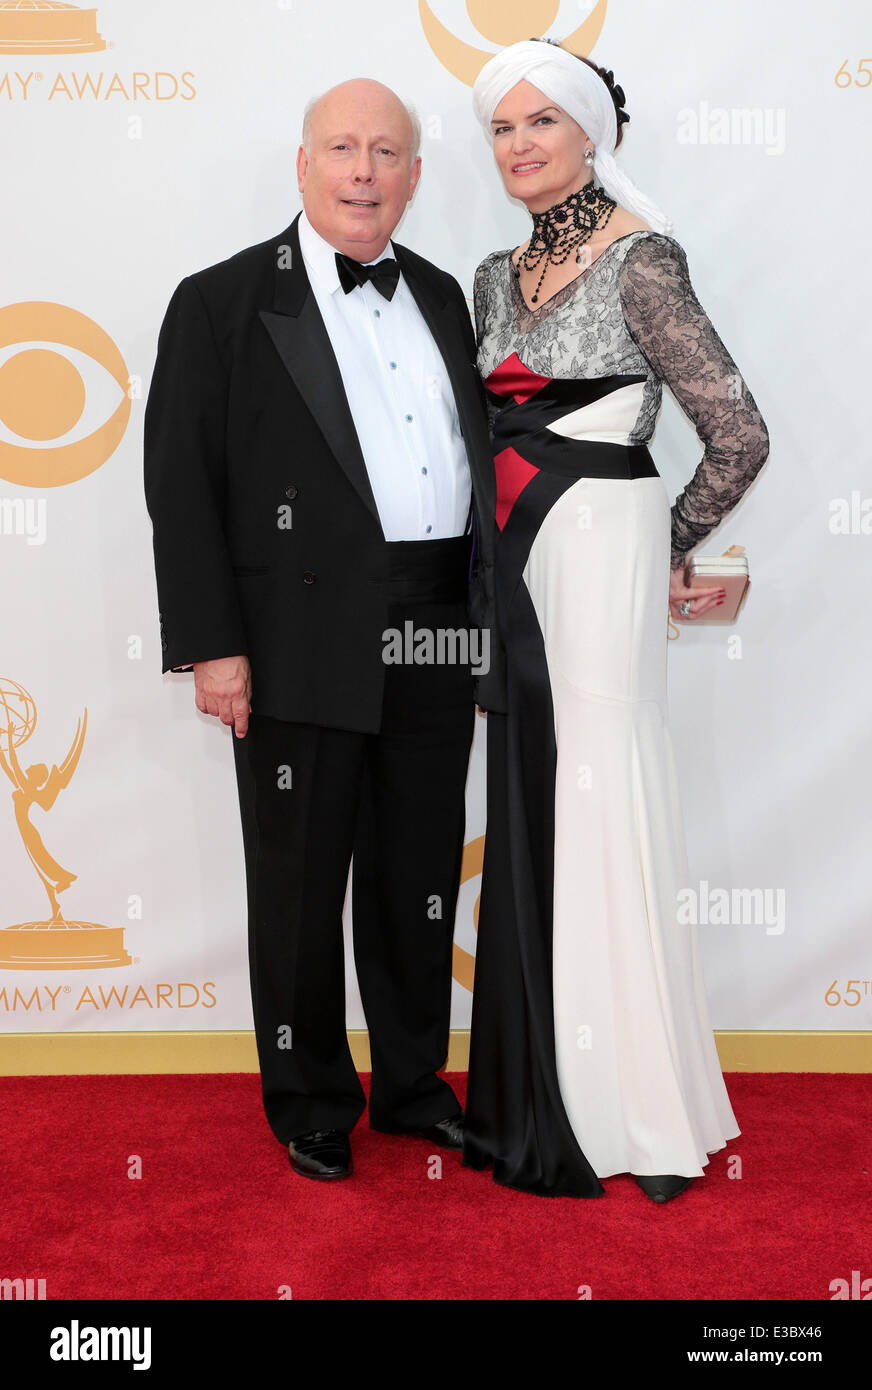 65th Annual Primetime Emmy Awards held at Nokia Theatre L.A. Live ...